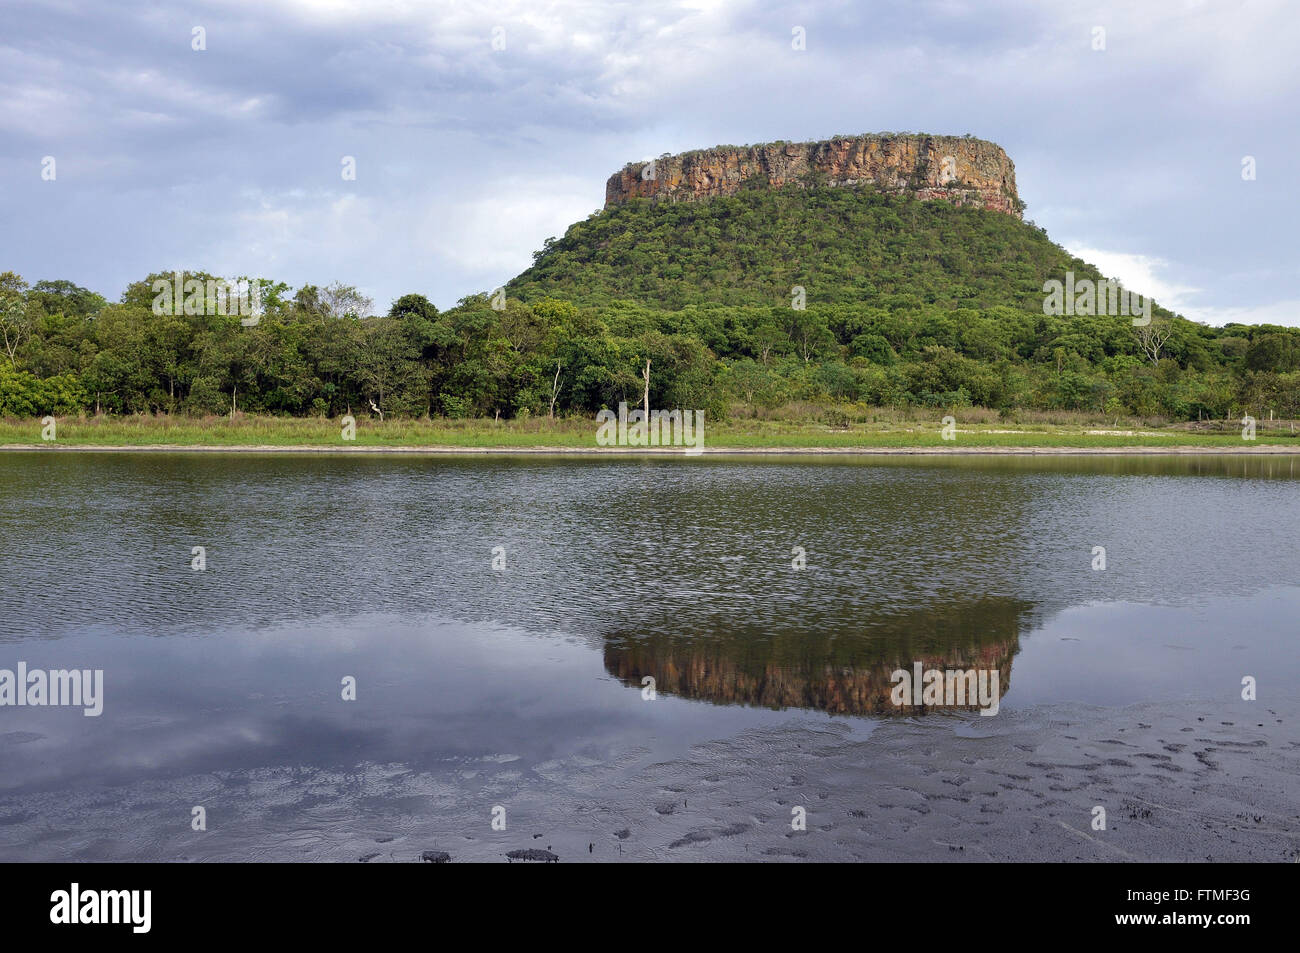 Bureau hill located in the Serra Azul - Stock Image